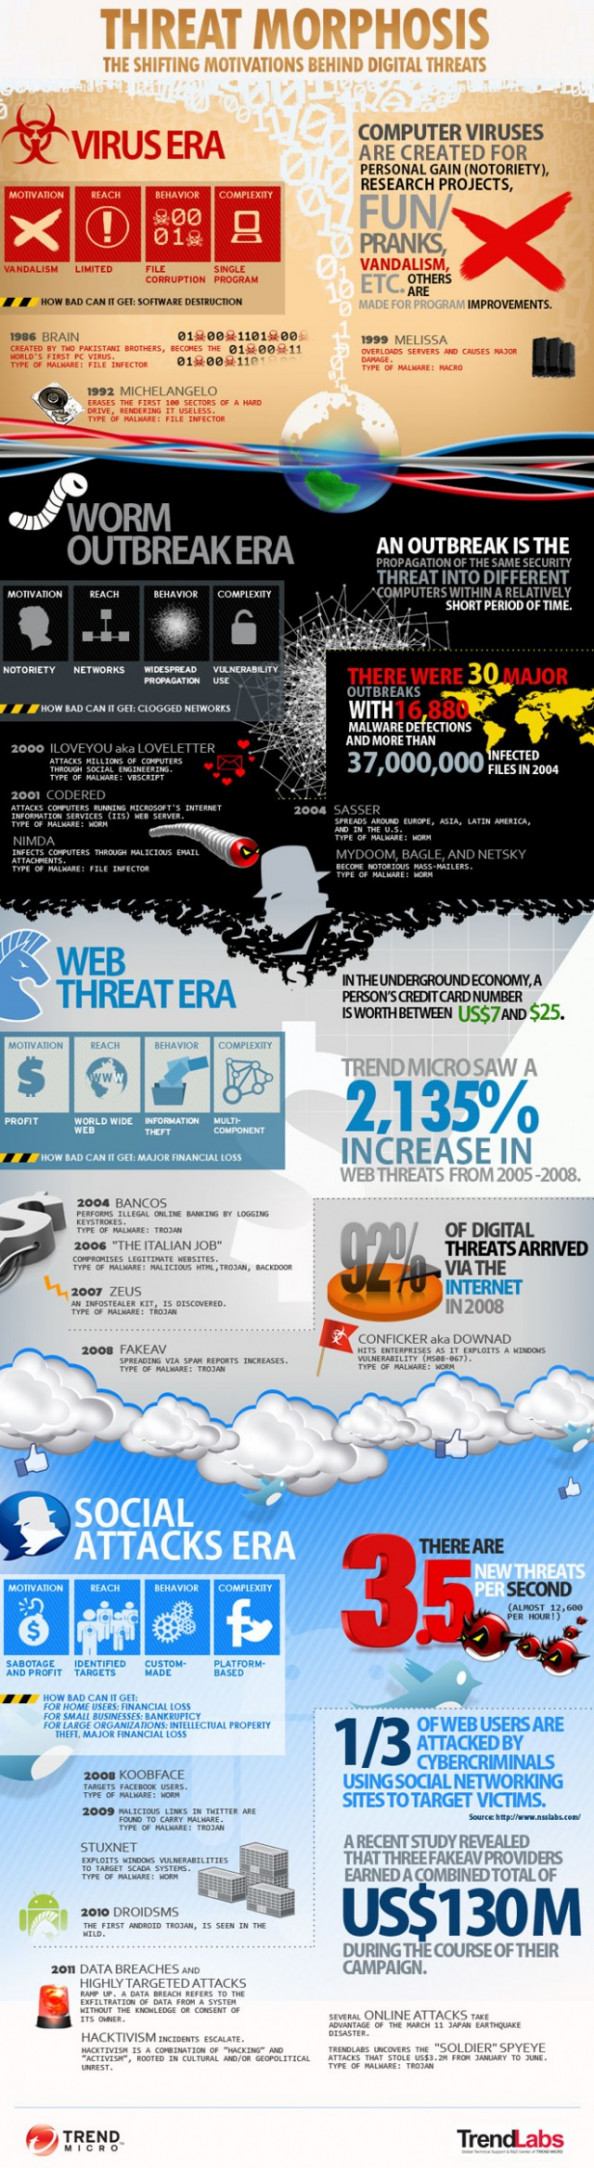 Threat Morphosis: Evolution of the Computer Virus Infographic